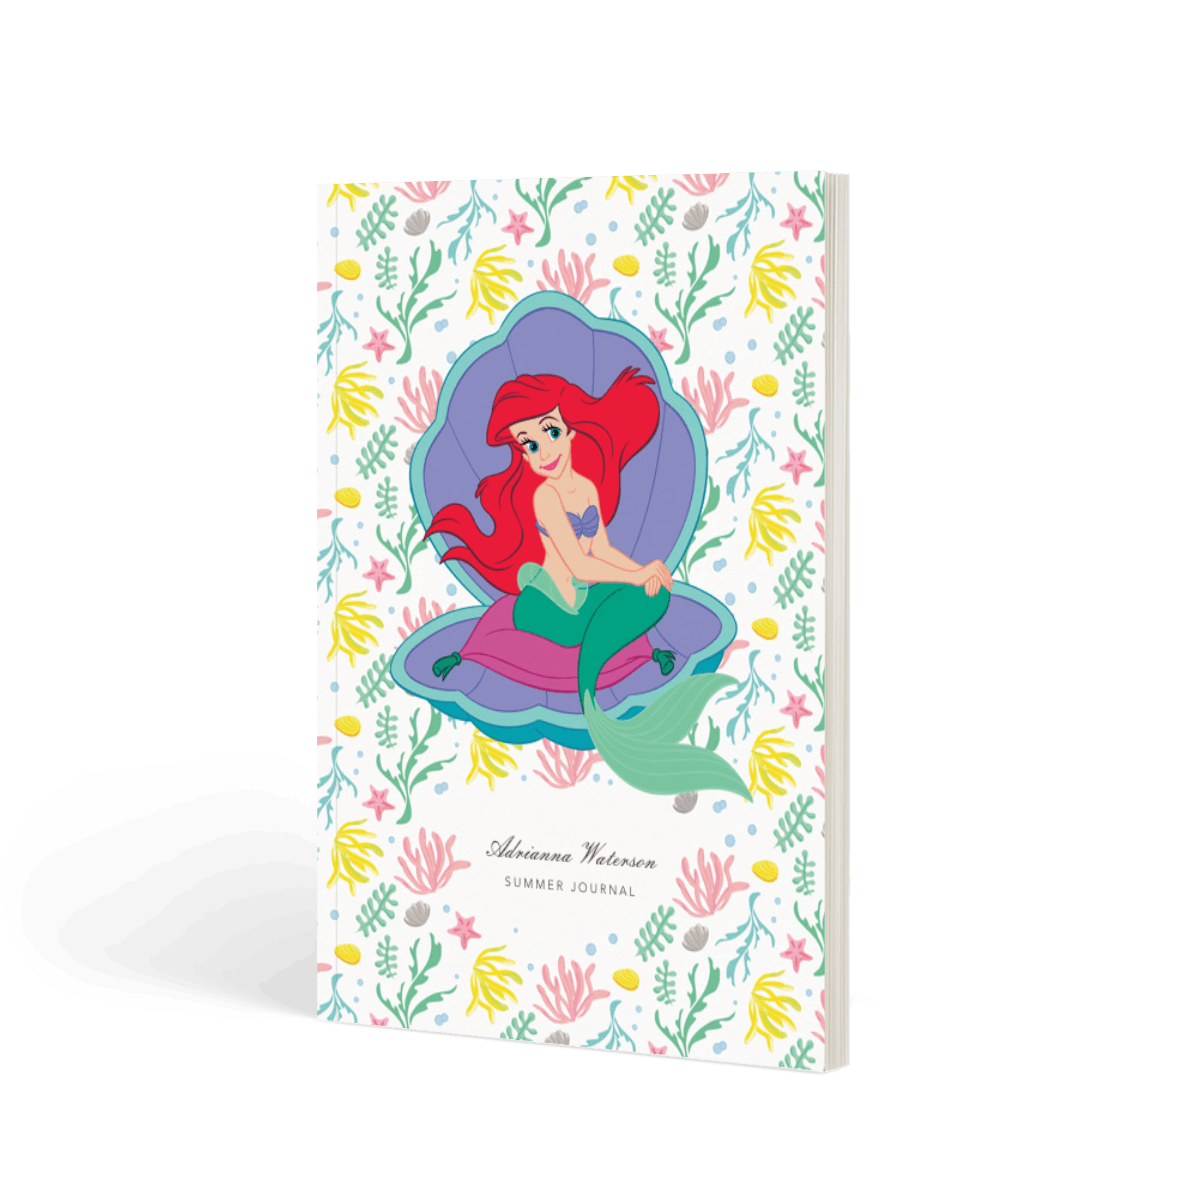 Https%3a%2f%2fwww.papier.com%2fproduct image%2f54117%2f6%2fthe little mermaid 13017 front 1542292245.png?ixlib=rb 1.1